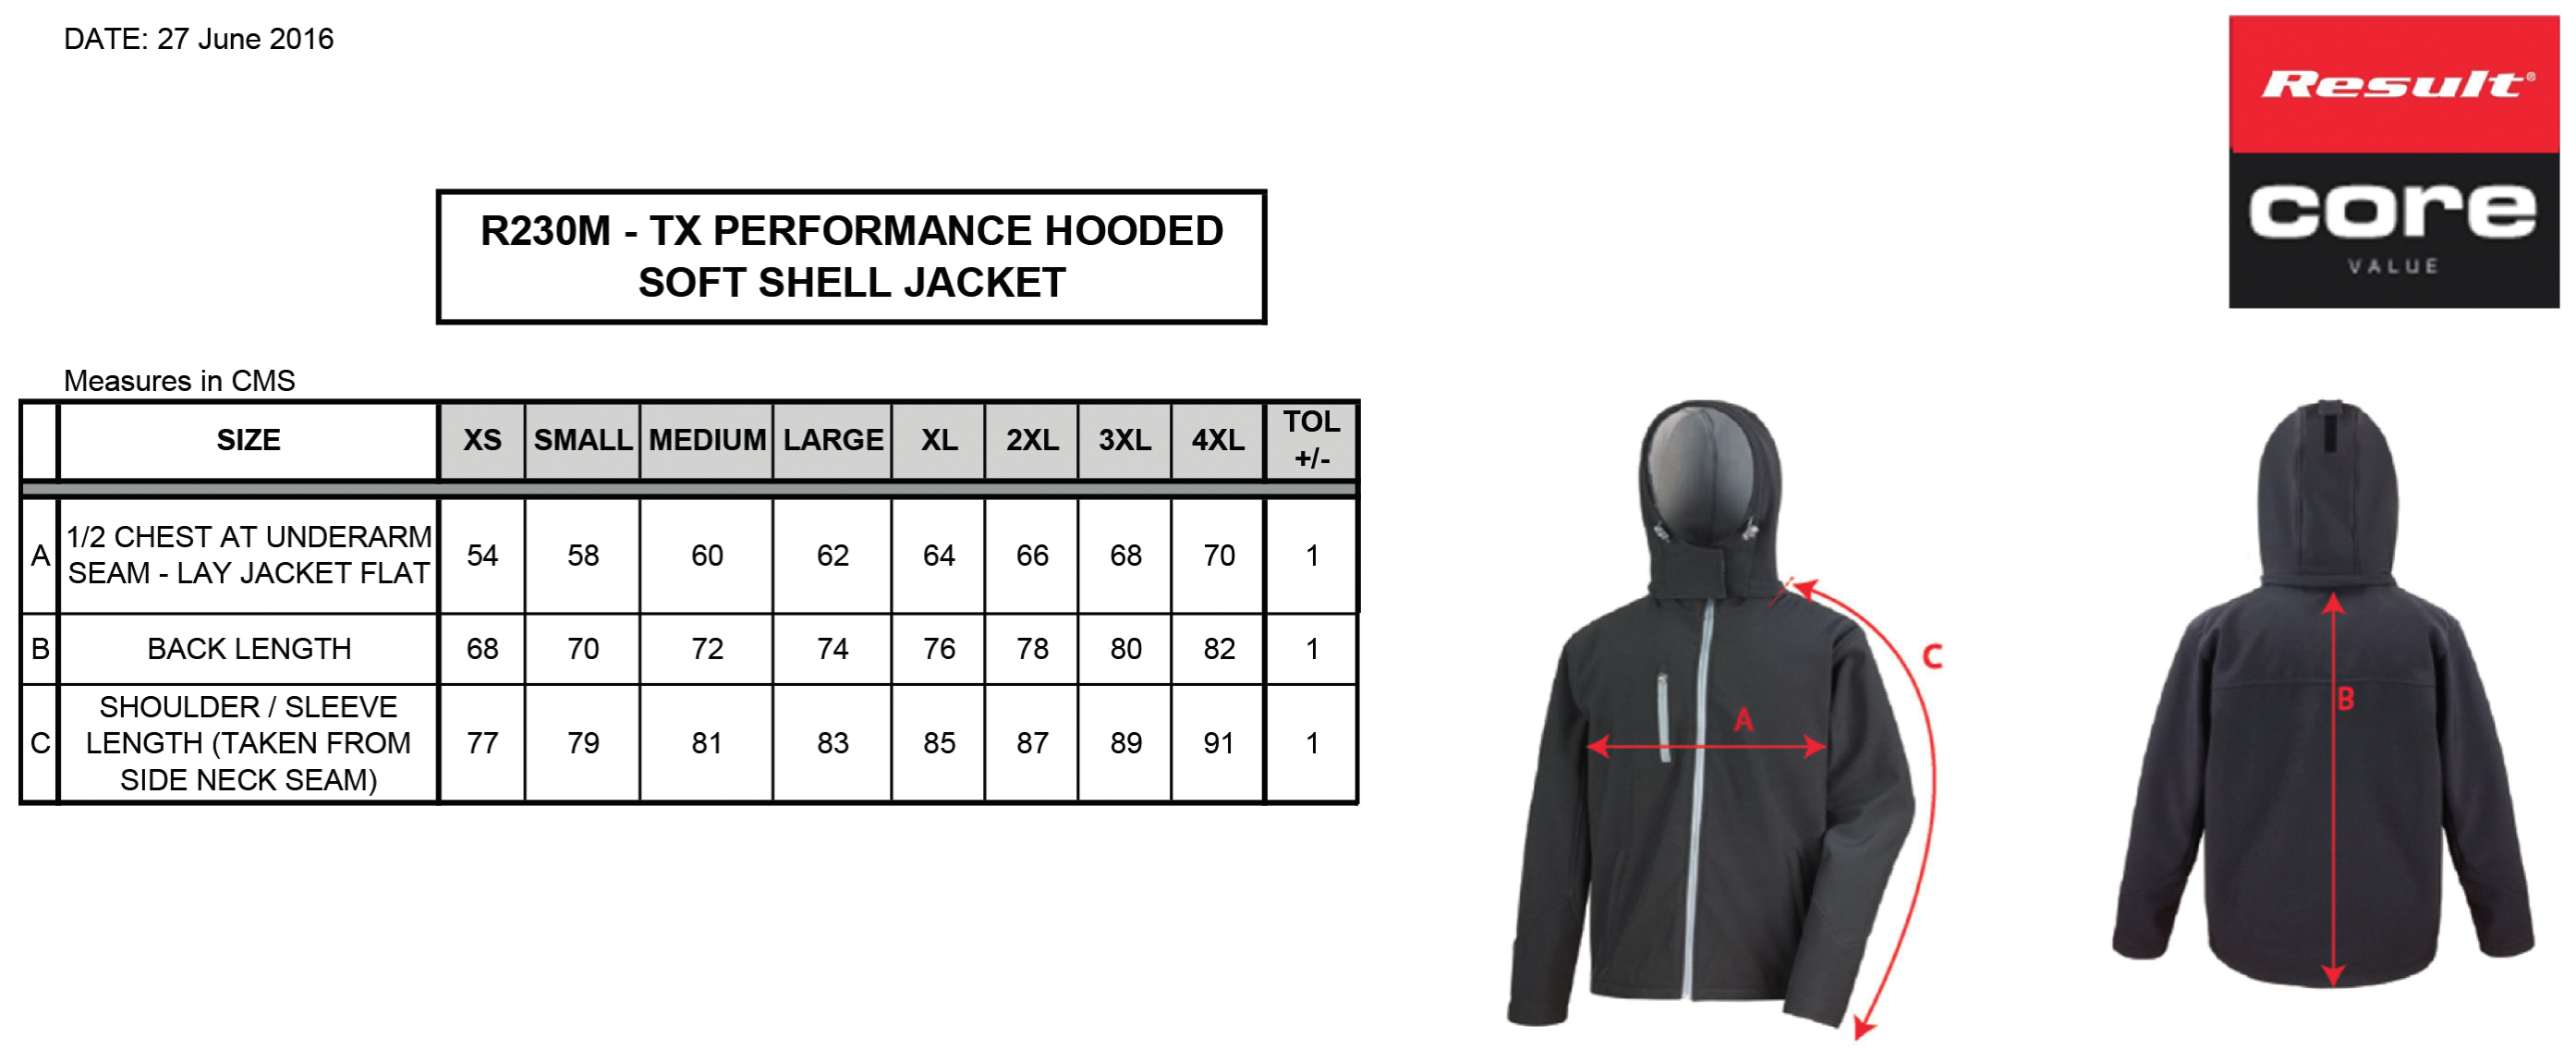 Result: TX Performance Hooded Softshell Jacket R230M